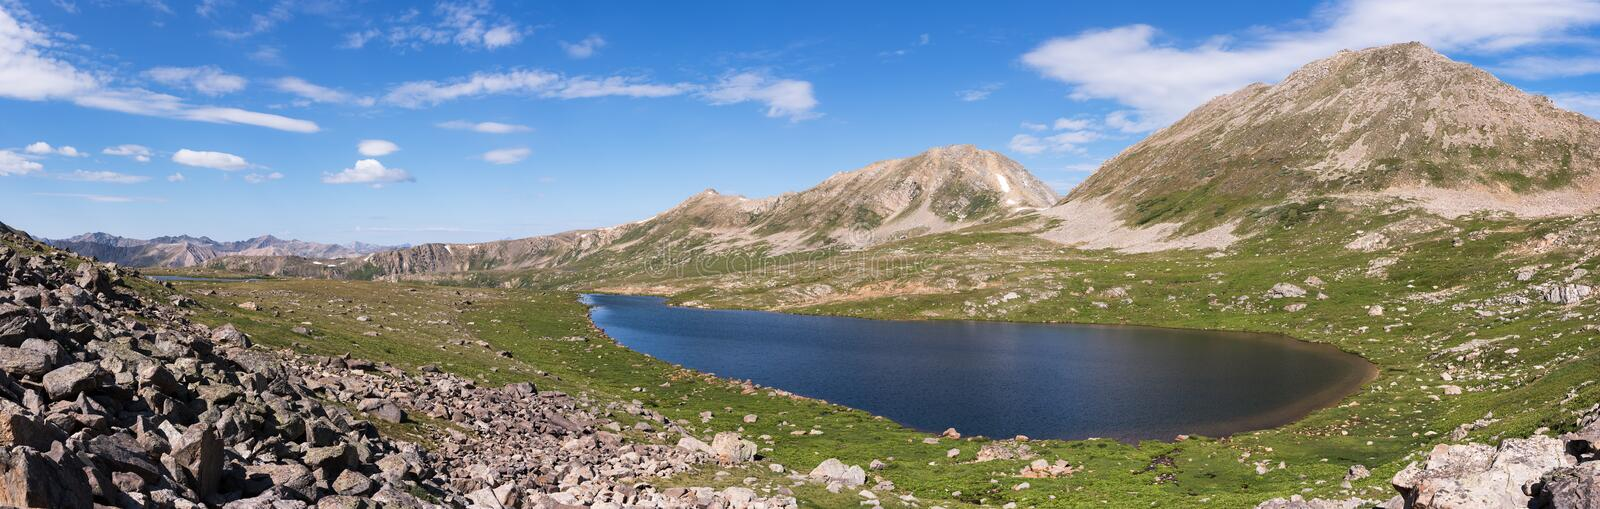 Panorama of Independence Lake with Geissler Mountain. Panorama of Independence Lake in a high mountain valley within the White River National Forest in Central stock photos